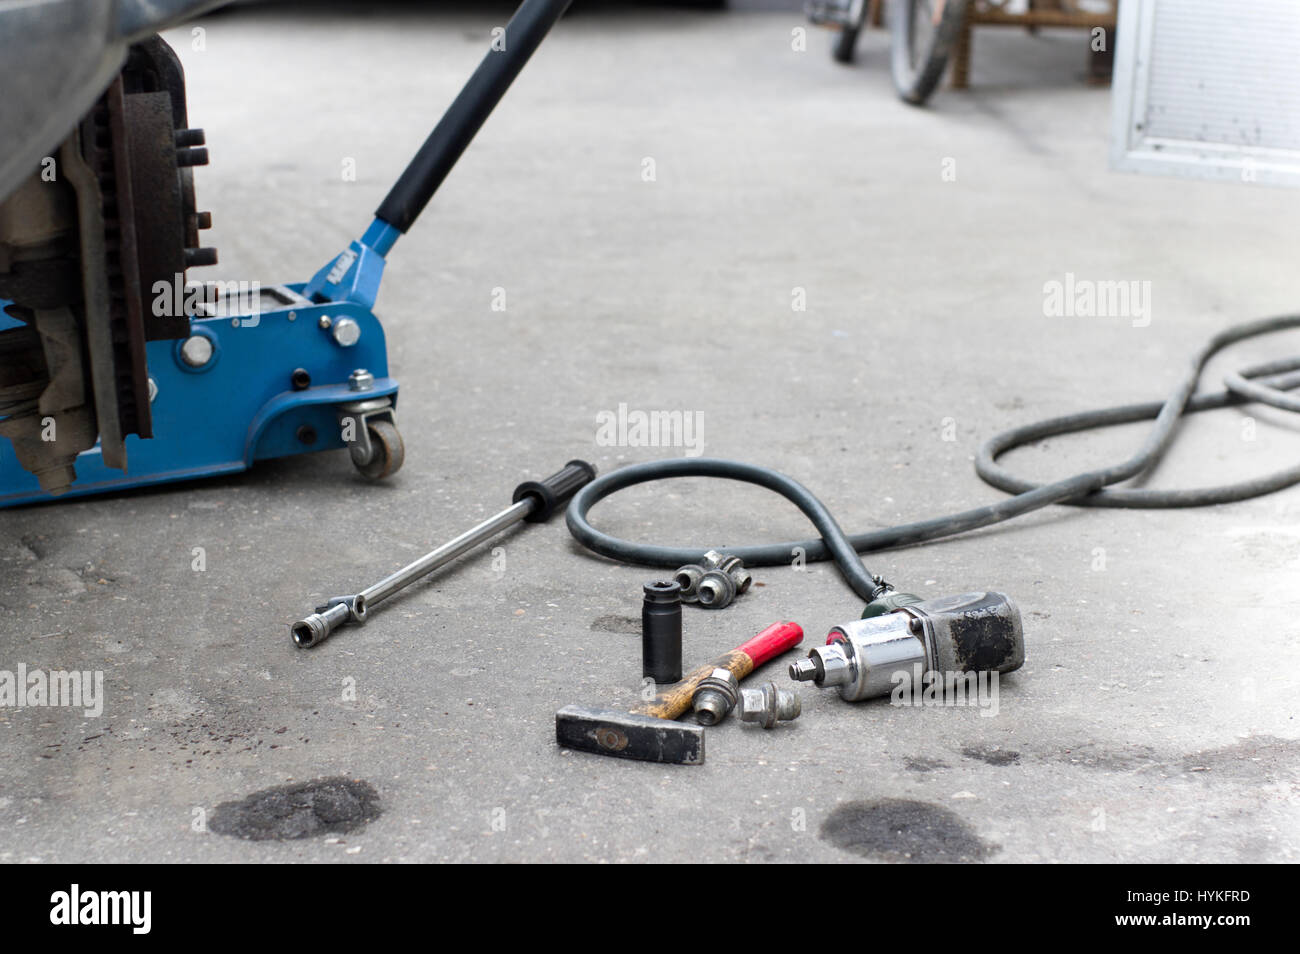 Sensational A Lift Jack Under A Car And Work Tools Spread Out On The Home Remodeling Inspirations Basidirectenergyitoicom